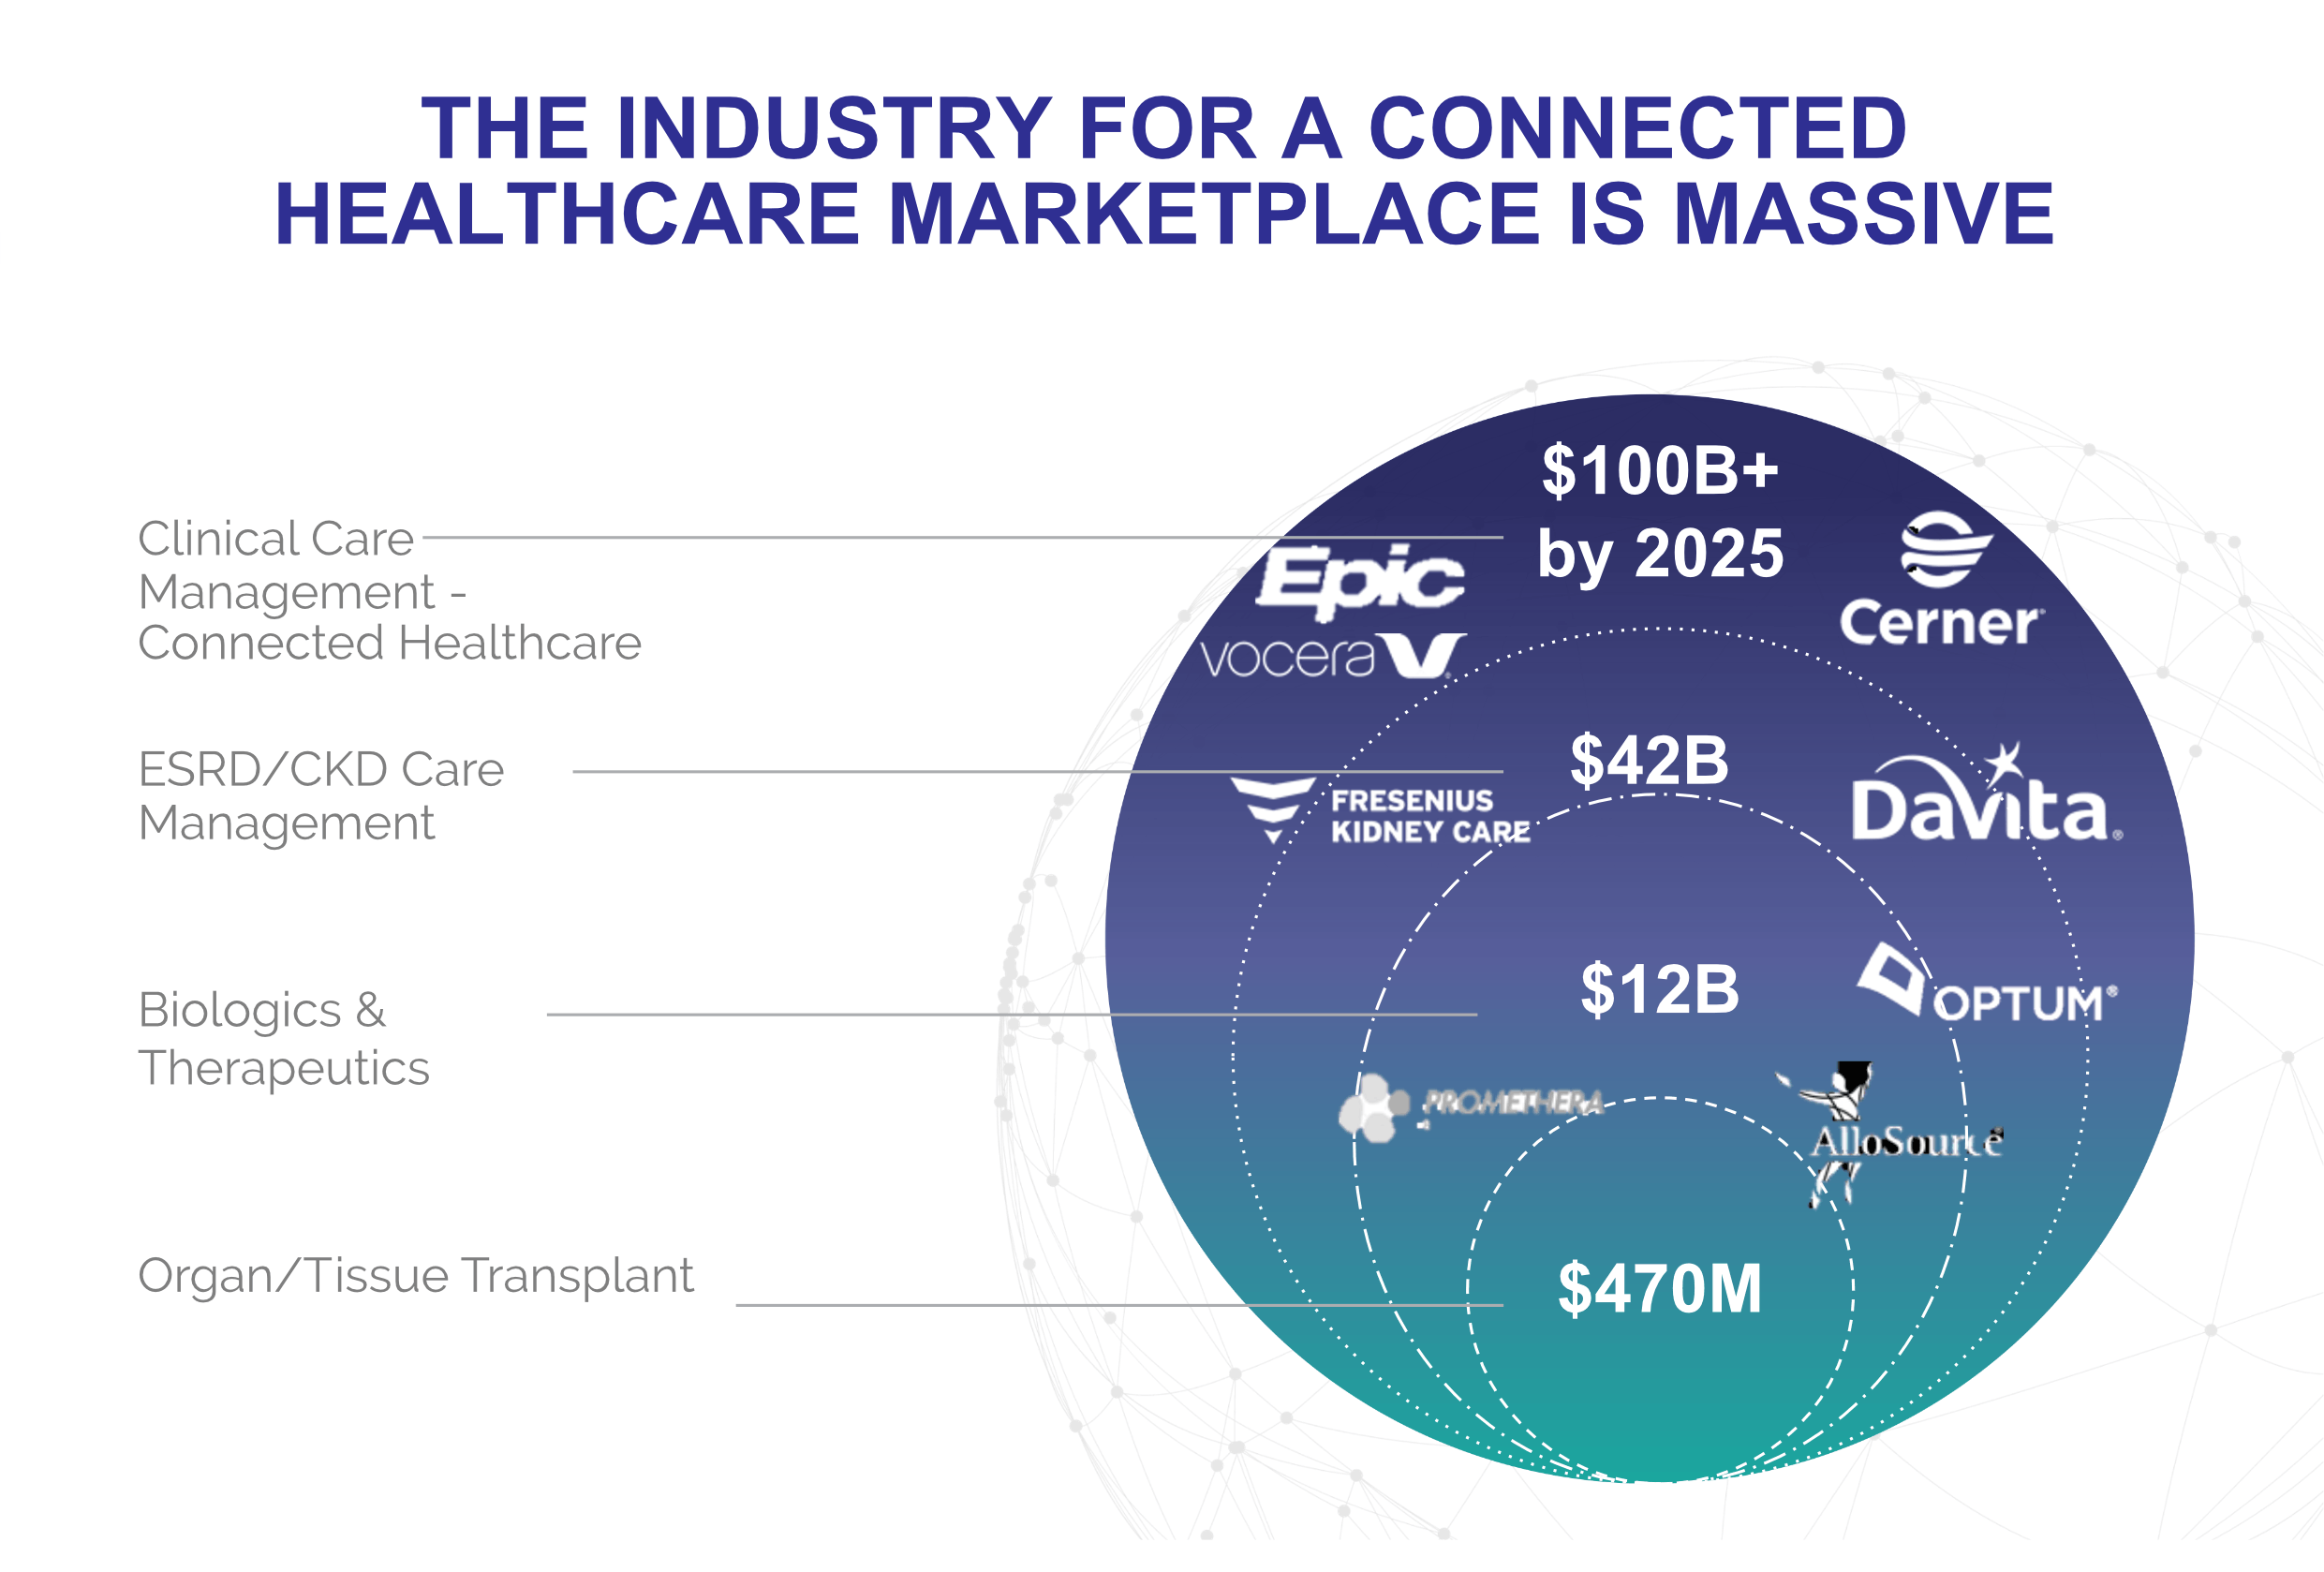 The industry for Connected healthcare marketplace is massive clinical care management connected healthcare esrd/ckd care management biologics and therapeutics organ / tissue transplant